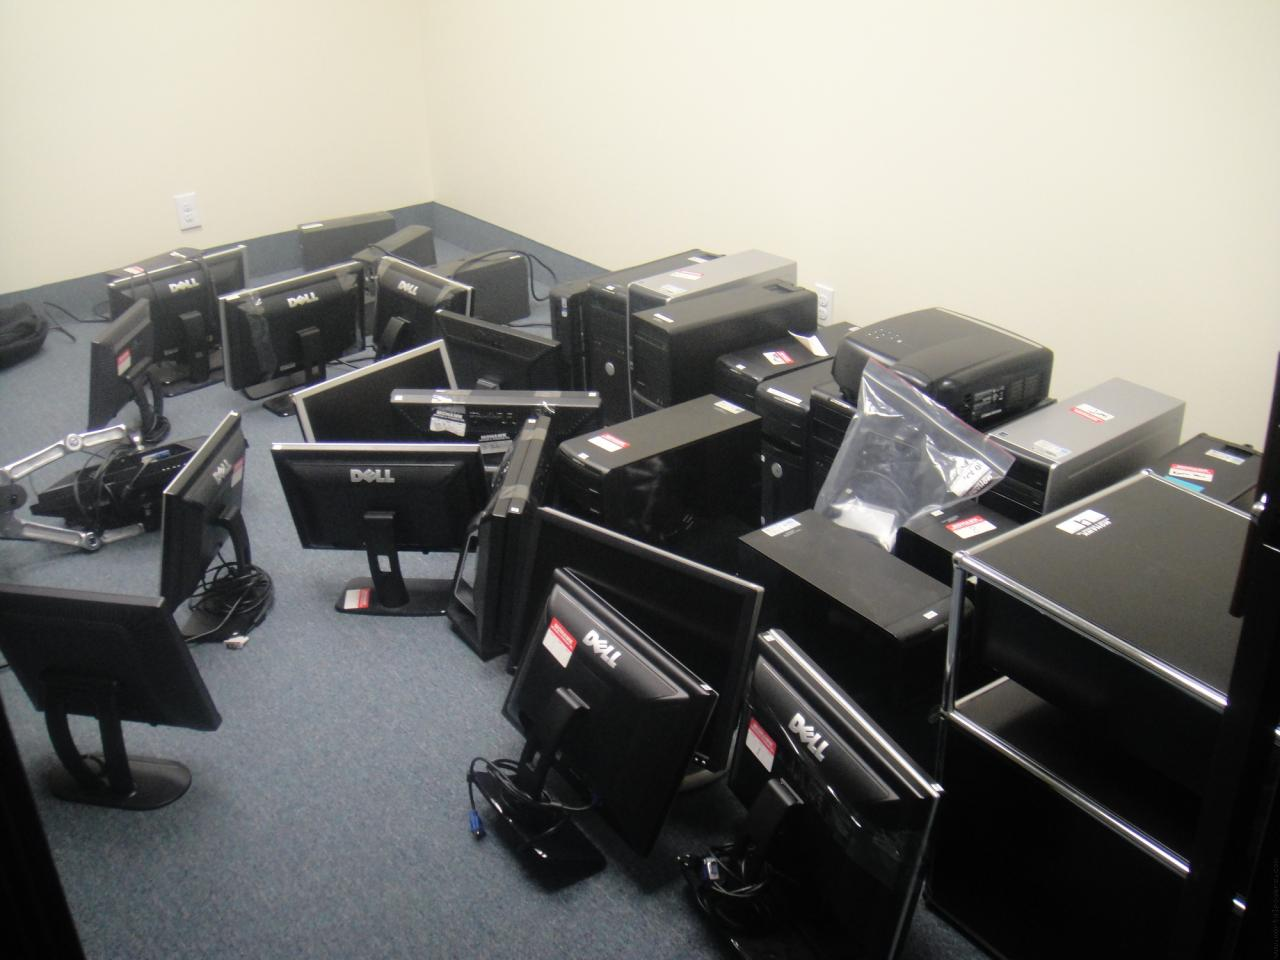 Computer Overload - Mass storage of computers